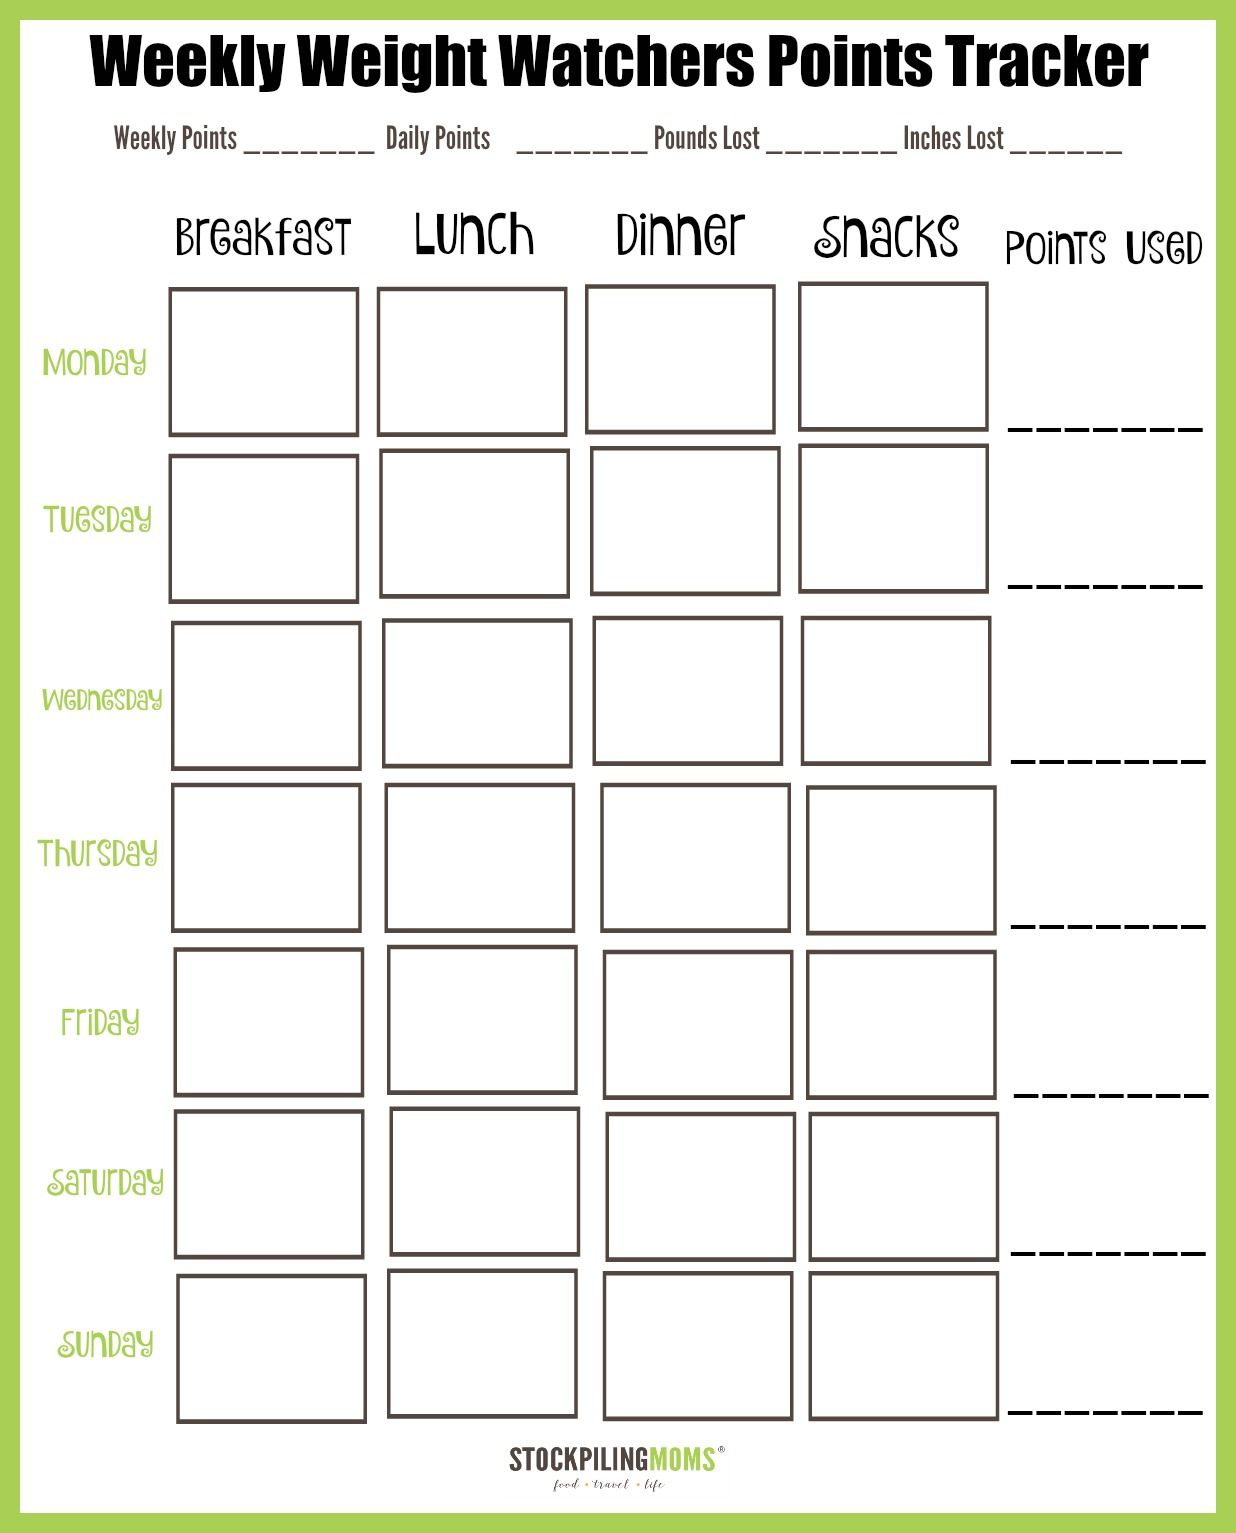 Worksheets Meal Tracking Worksheet weight watchers weekly points tracker free printable healthy printable